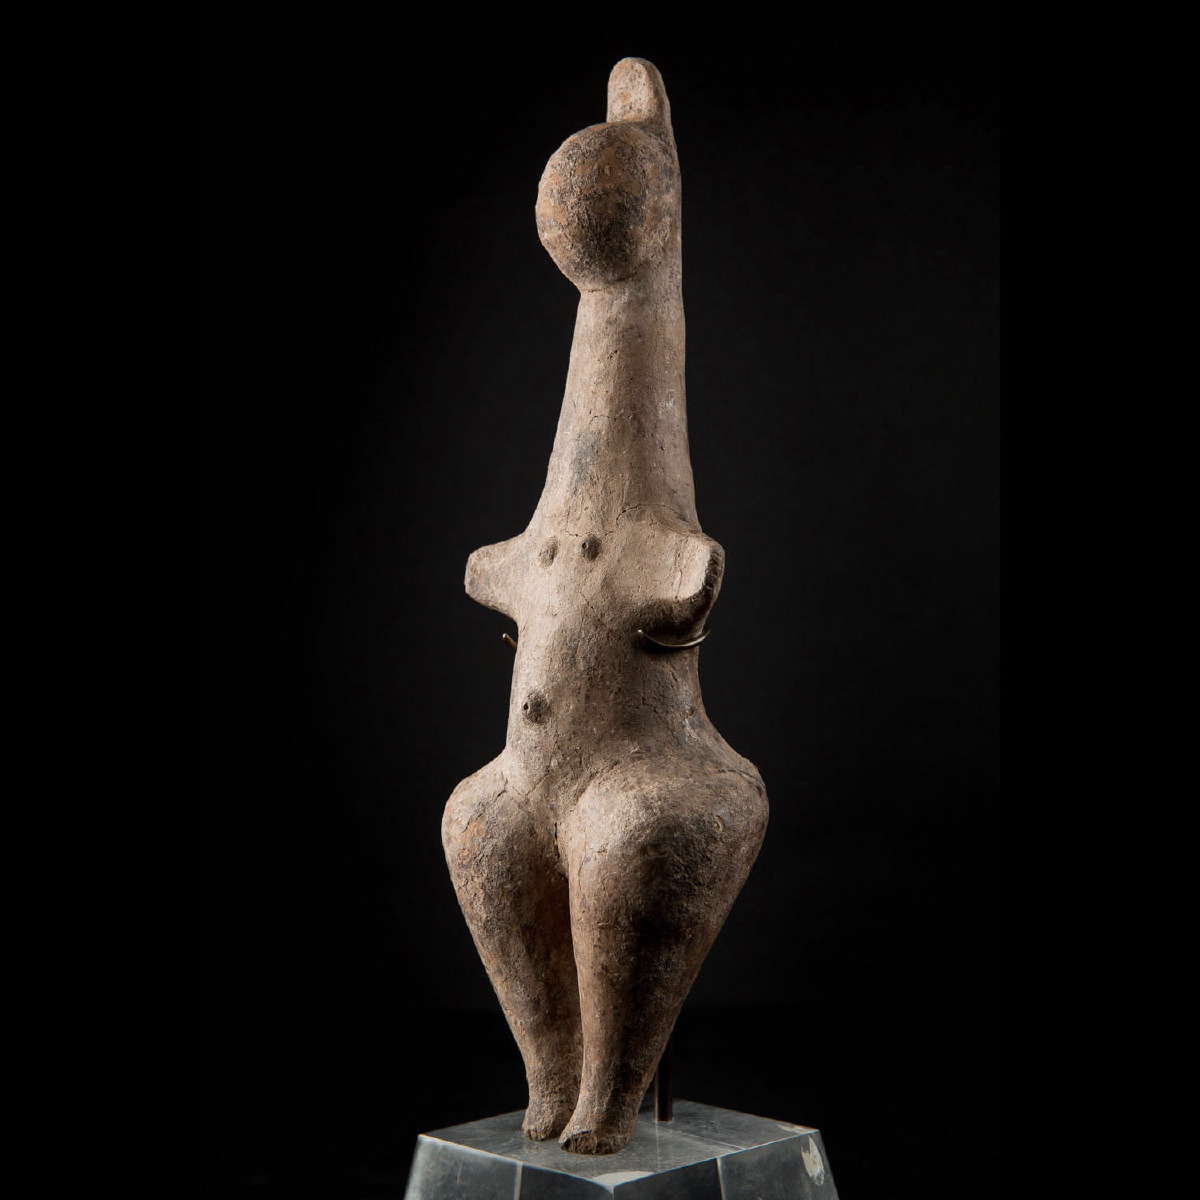 Photo of steatopyge-goddess-statue-amlash-culture-marlik-tepe-archeology-galerie-golconda